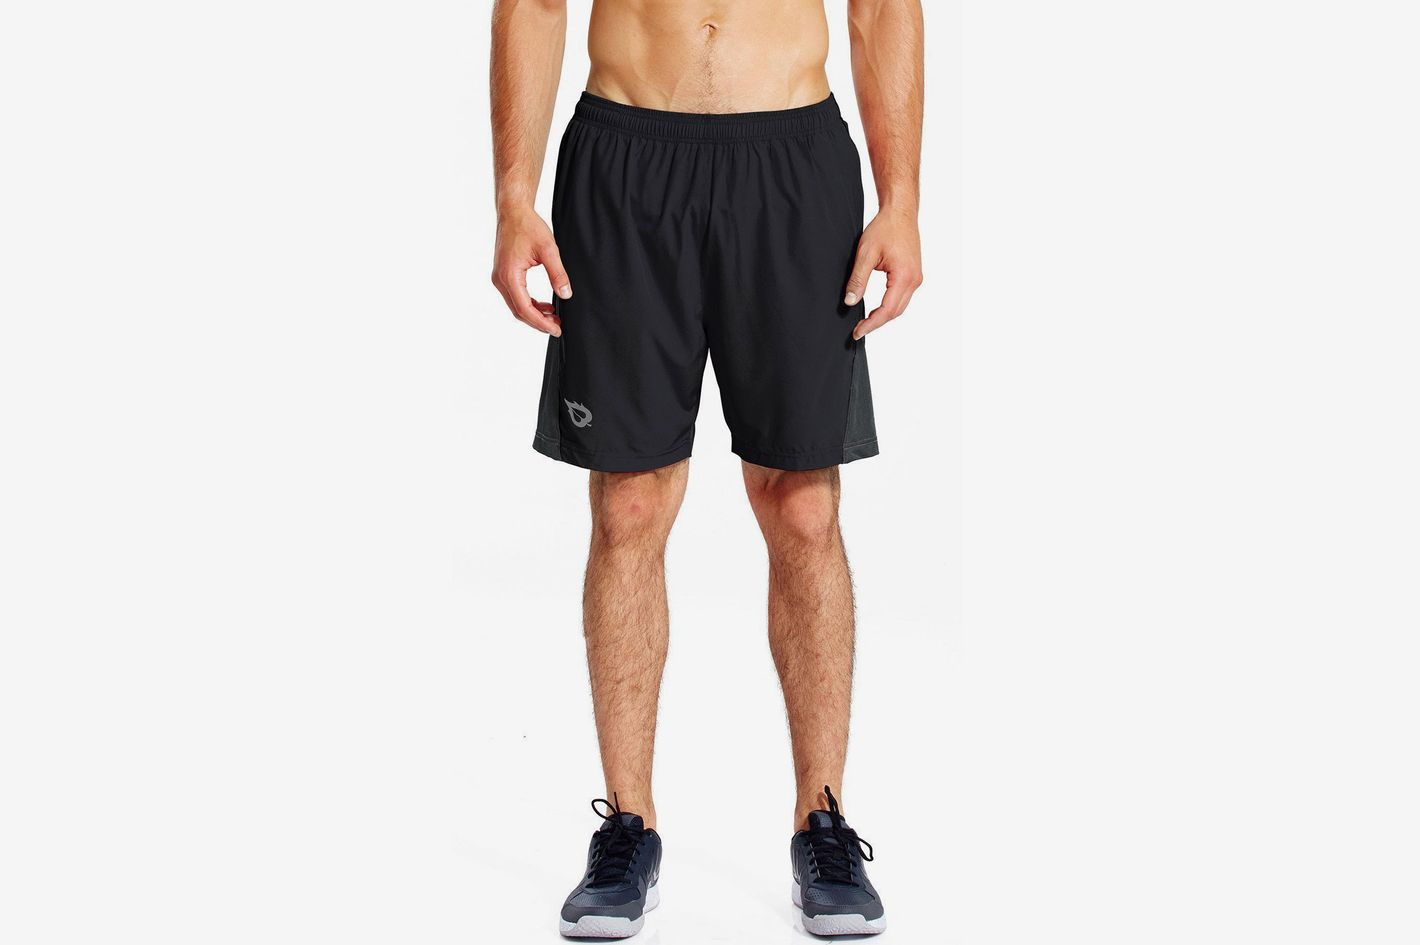 b11e23857676 10 Best Running Shorts for Men 2018